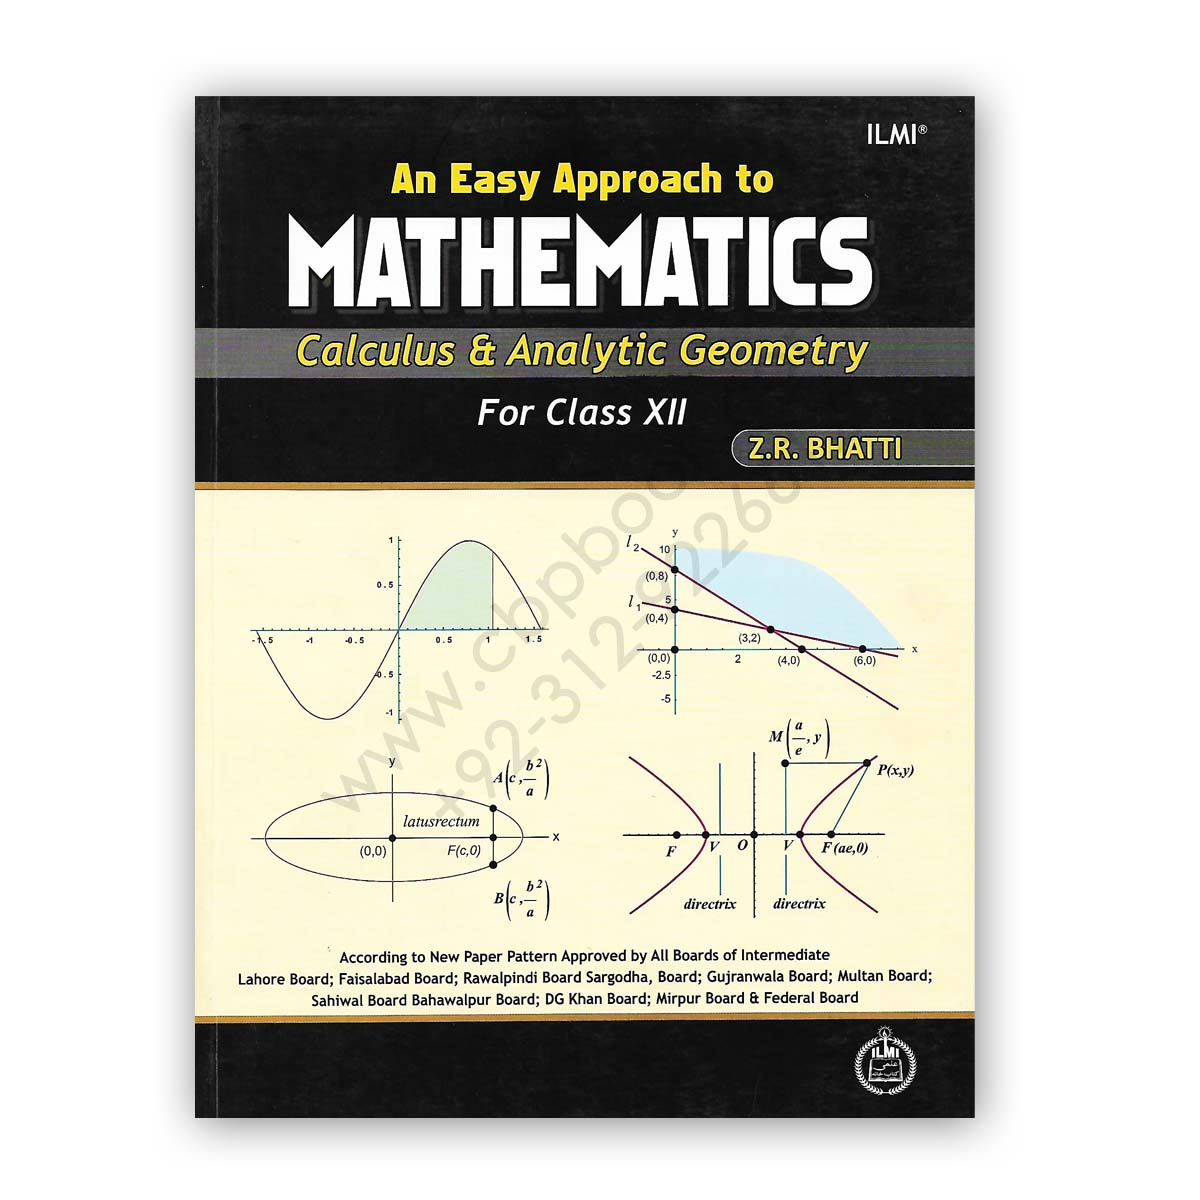 ilmi an easy approach to mathematics for class 12 by z r bhatti